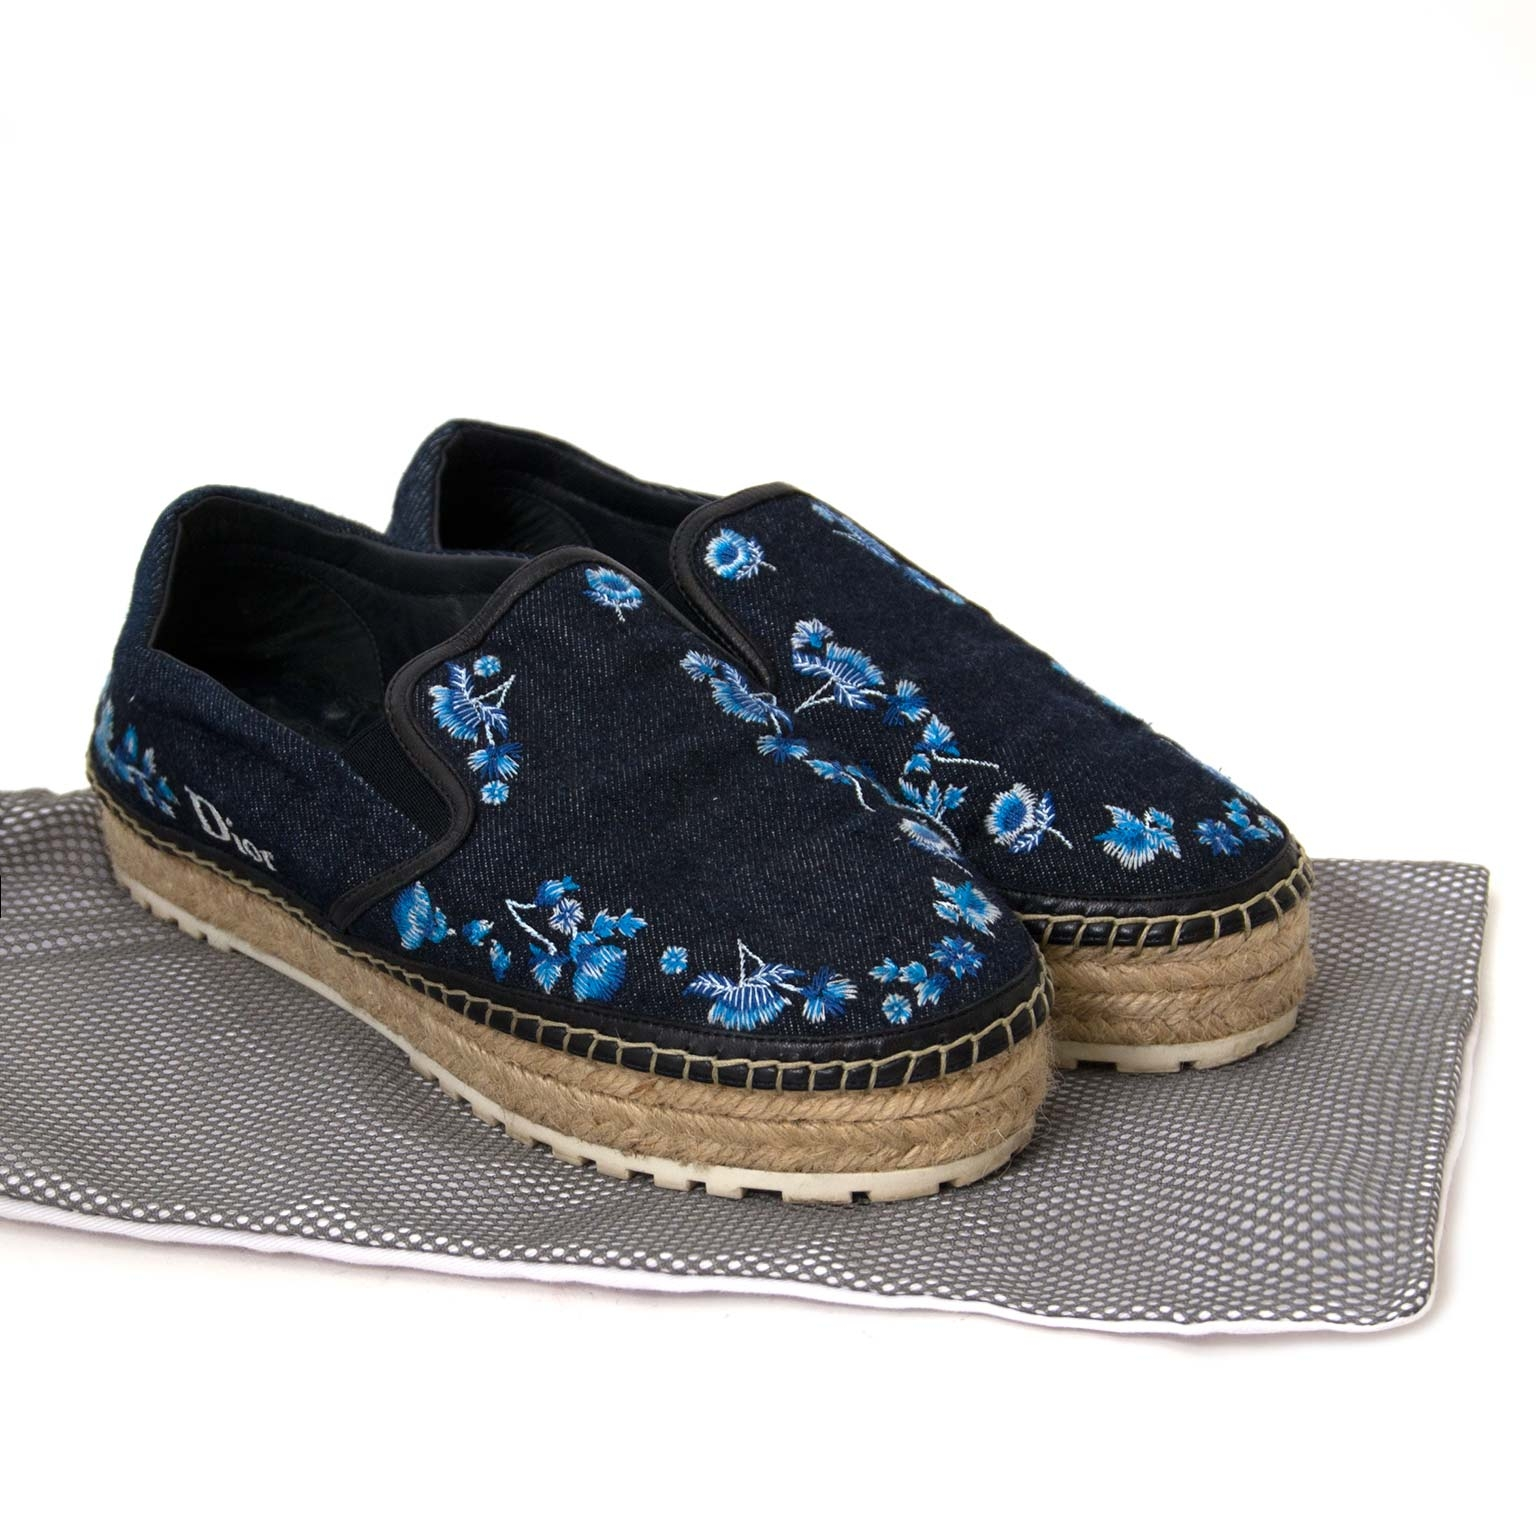 dior prairie espadrilles now online at labellov vintage fashion webshop belgium